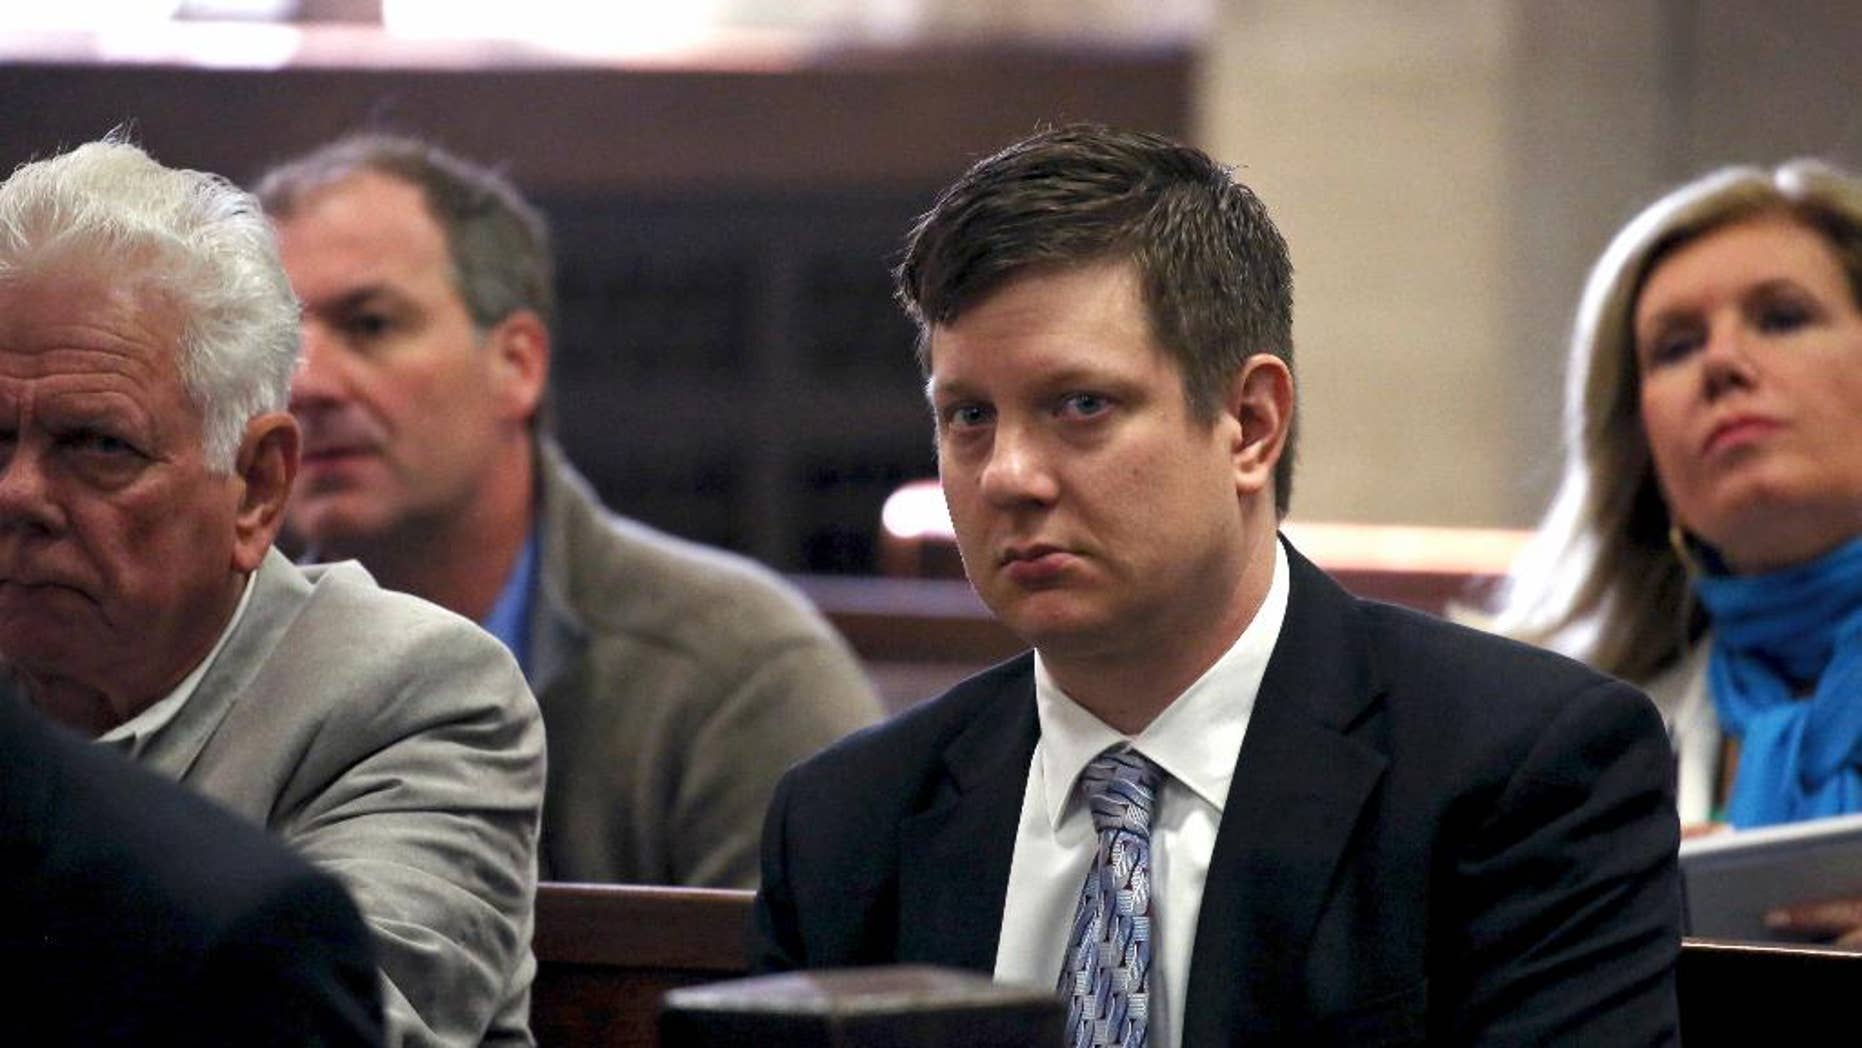 FILE - In this May 5, 2016, file photo, Chicago police officer Jason Van Dyke, charged with first-degree murder in the October 2014 shooting death of a black teenager, sits in court for a hearing in his case in Chicago. Van Dyke's family, with the officer's approval, has spoken out publicly for the first time since he was charged with murder in an interview with the Chicago Tribune. Van Dyke followed his attorney's advice in declining to be interviewed himself. (Nancy Stone/Chicago Tribune via AP, Pool, File)